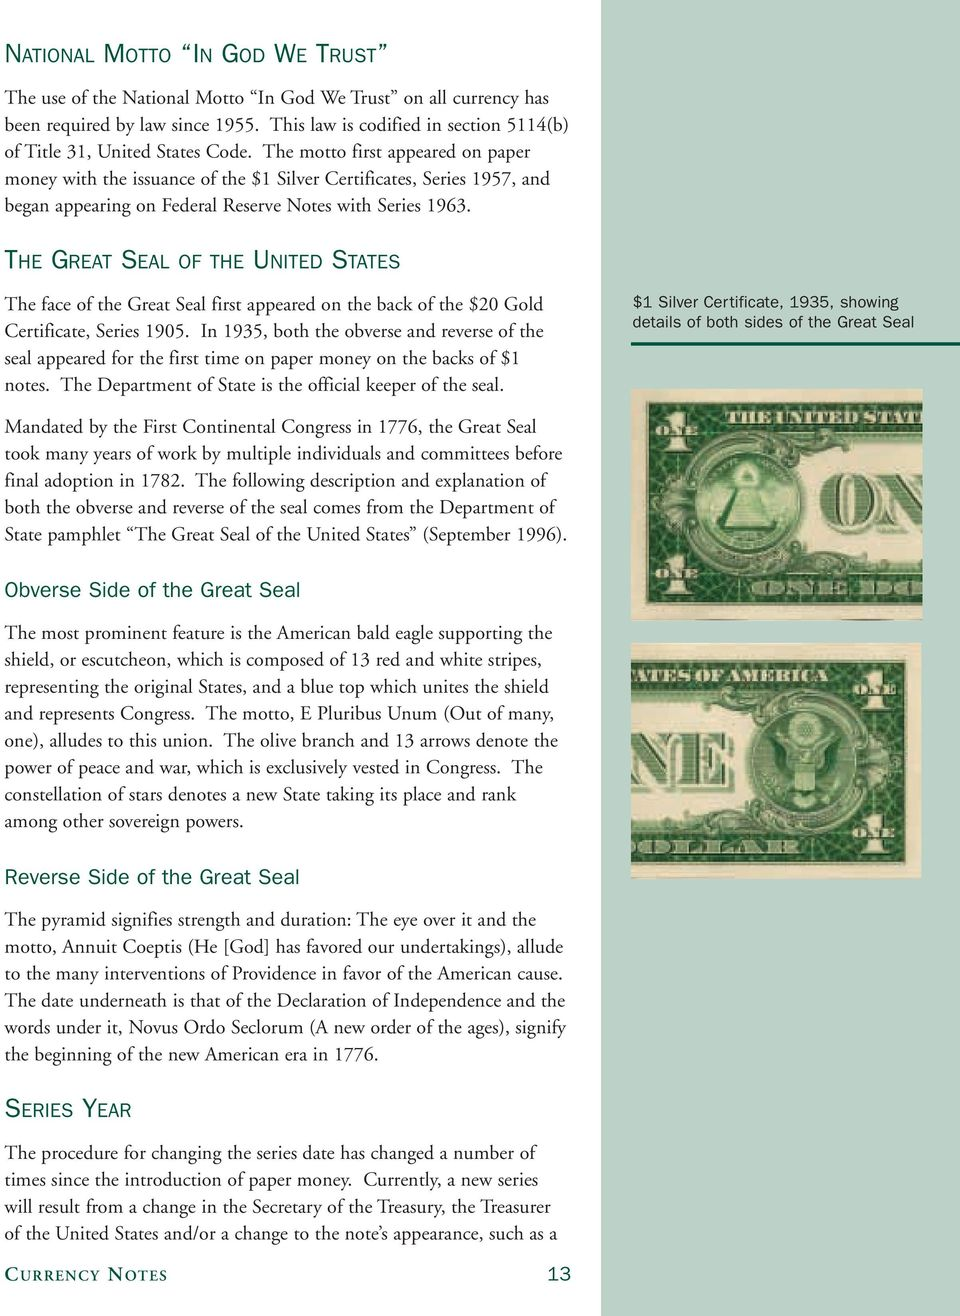 The motto first appeared on paper money with the issuance of the $1 Silver Certificates, Series 1957, and began appearing on Federal Reserve Notes with Series 1963.